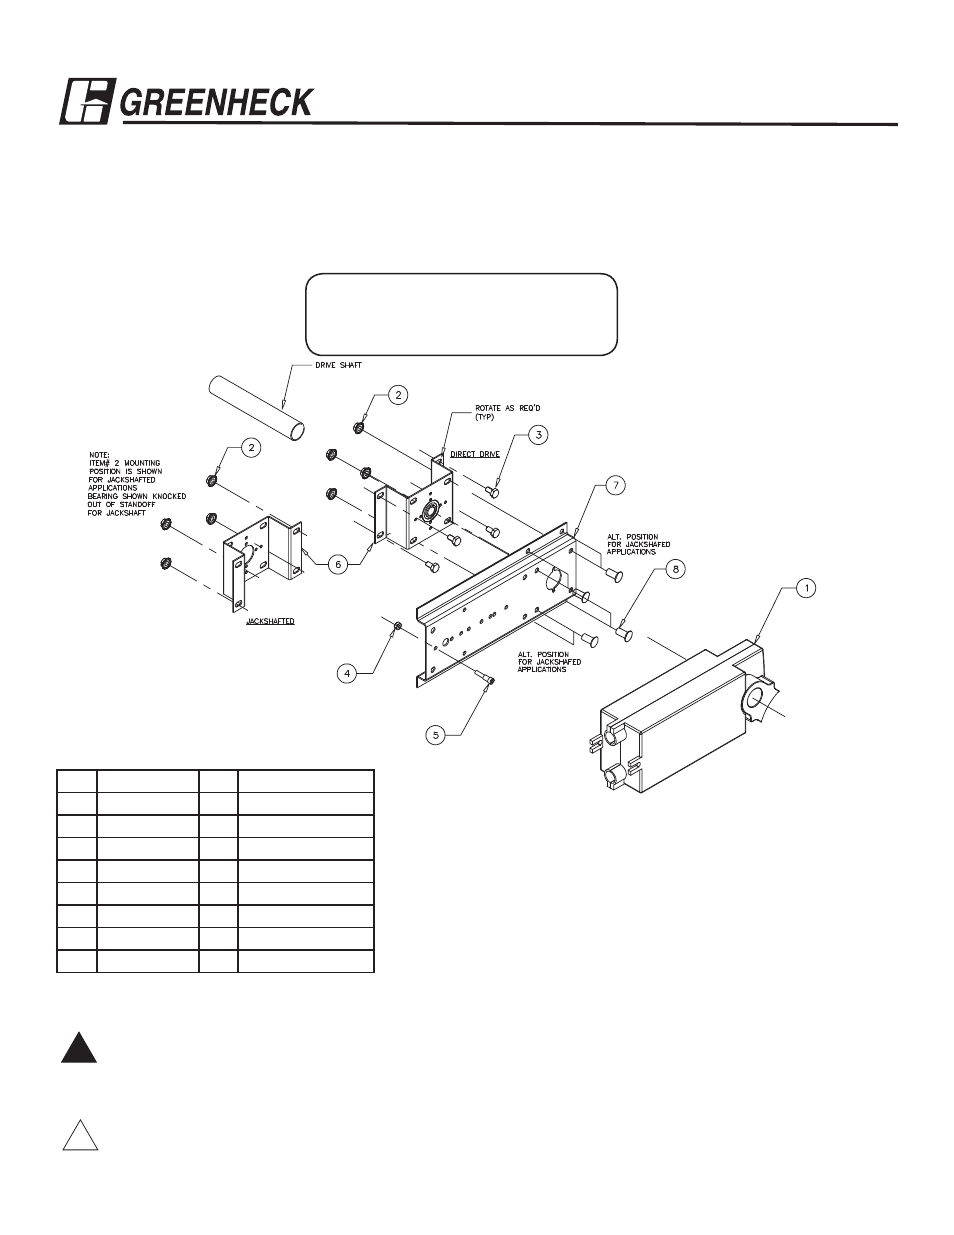 Greenheck Ms4120 Ms4620 Ms8120 Ms7520 Series 464287 User Manual. Background Honeywell Actuators. Wiring. Honeywell Ms7520 Actuator Wiring Diagram At Scoala.co